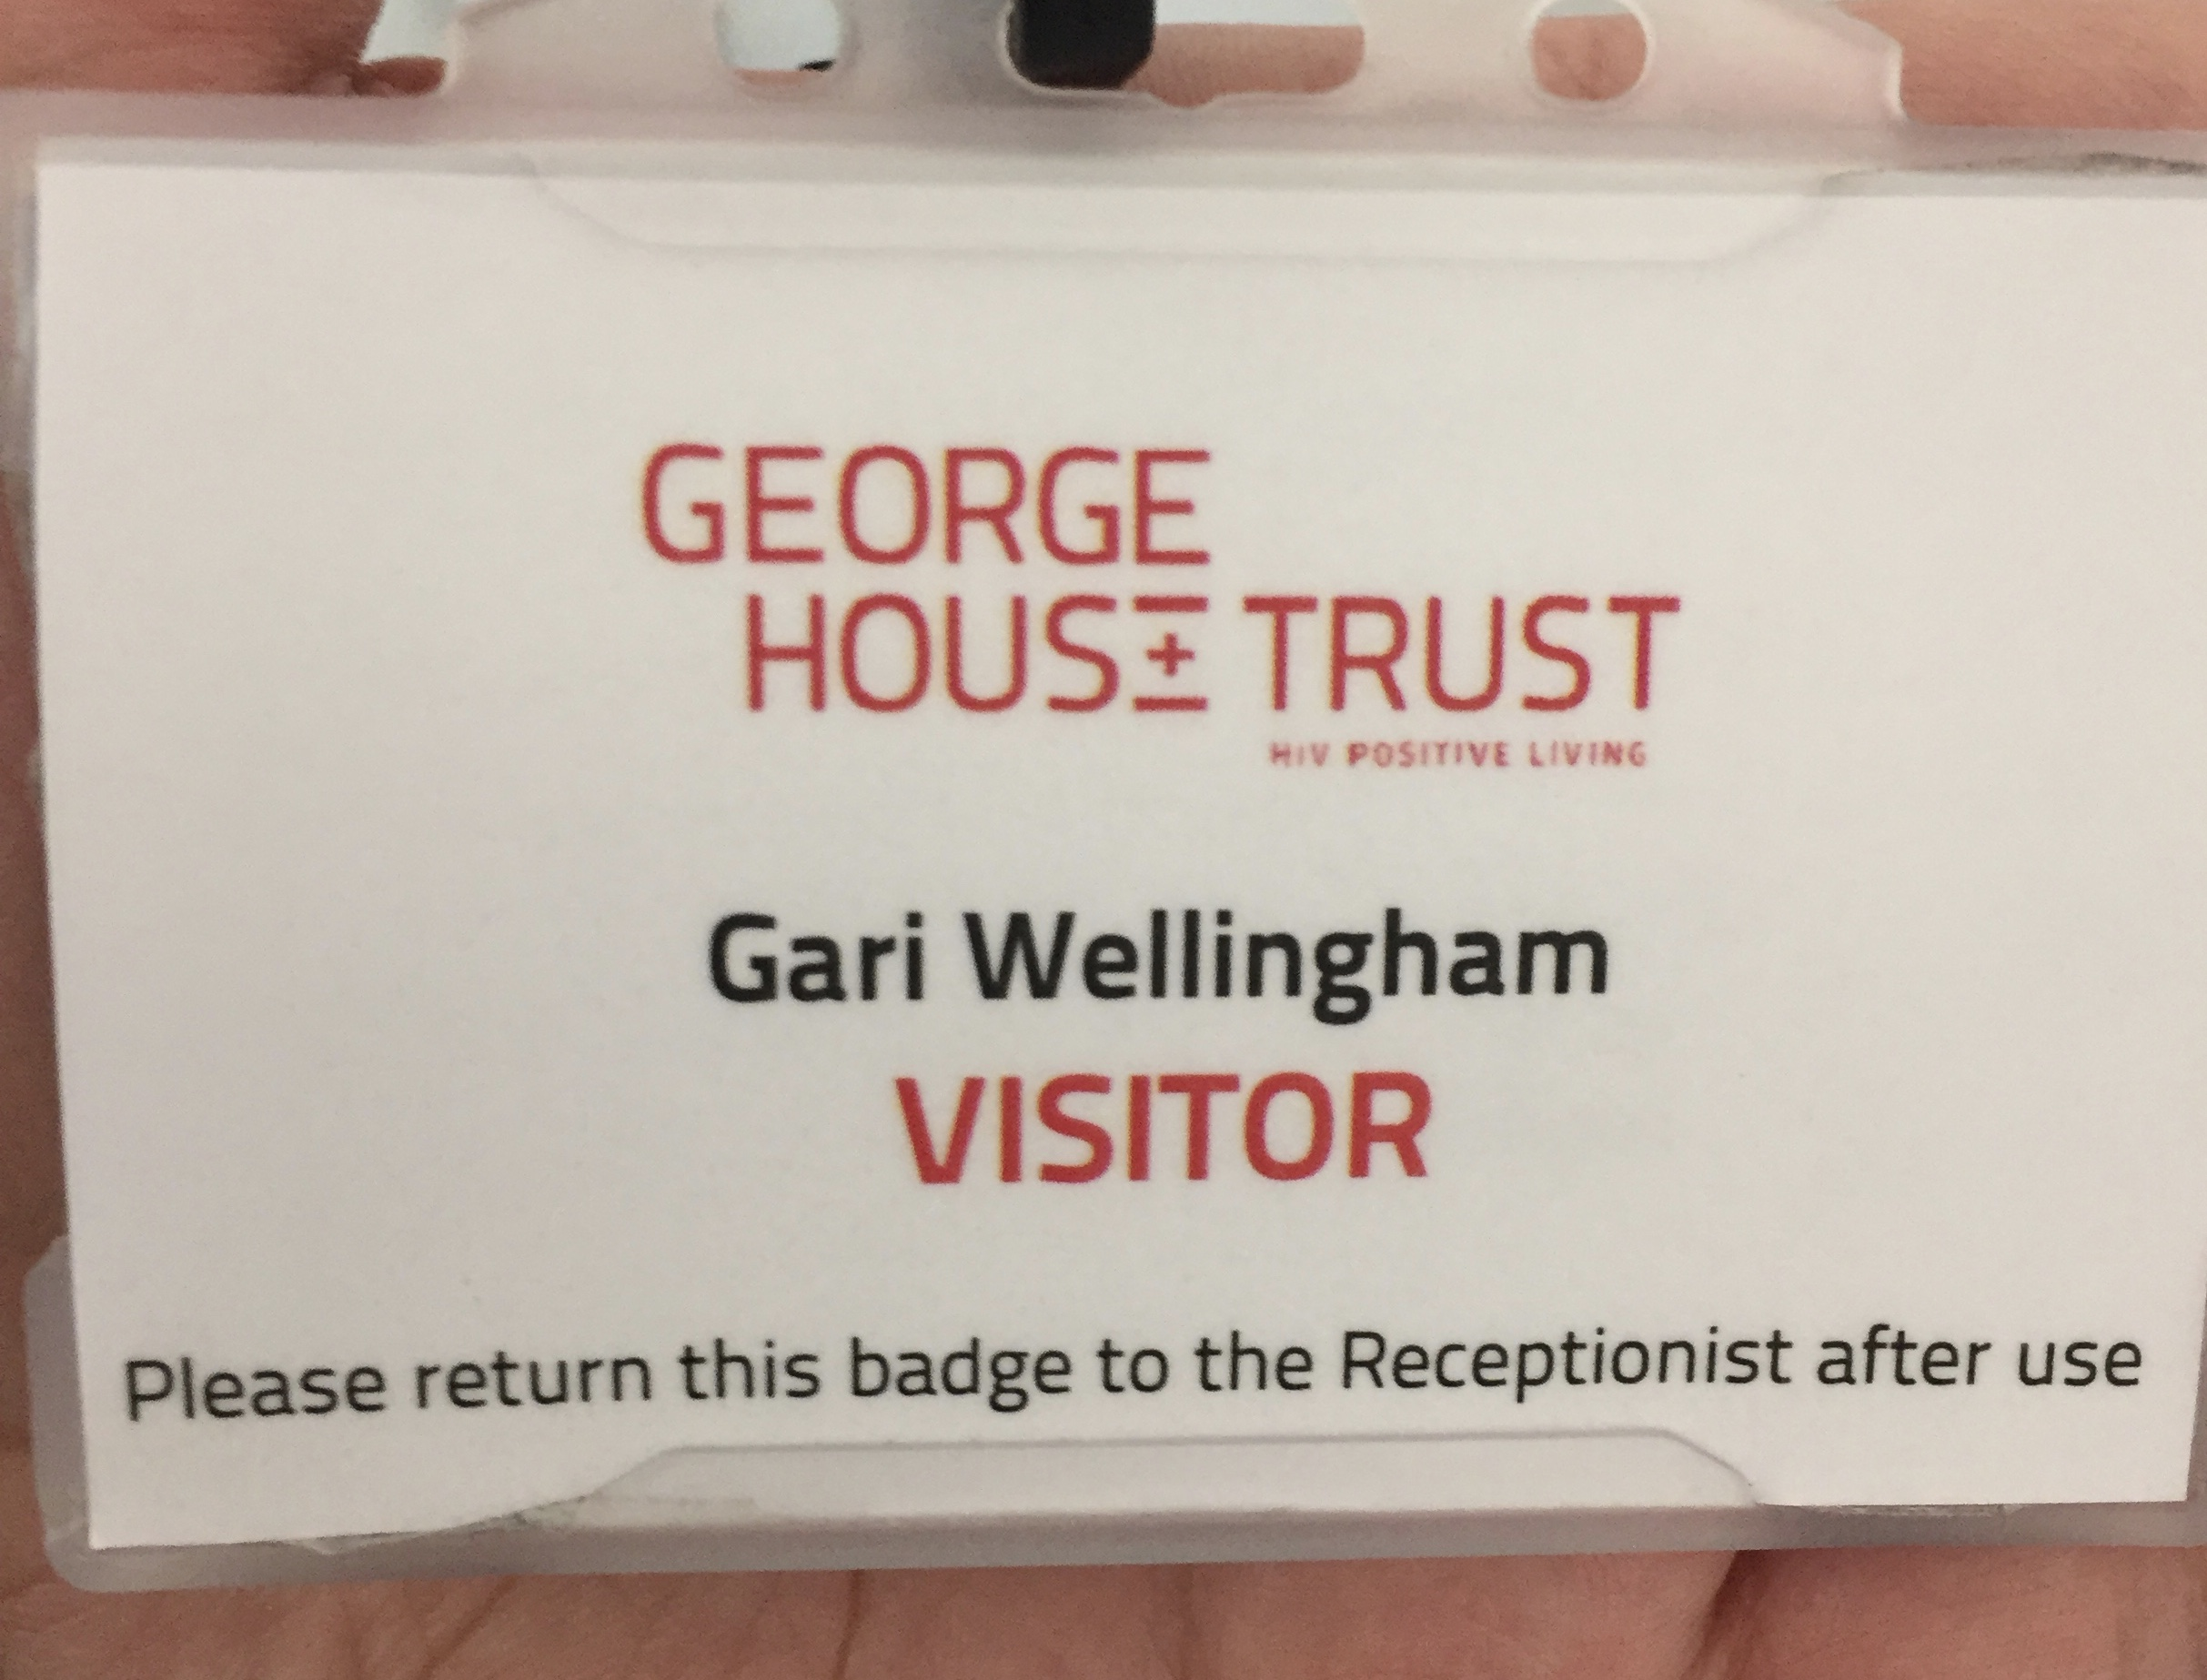 Spending a day with George House Trust